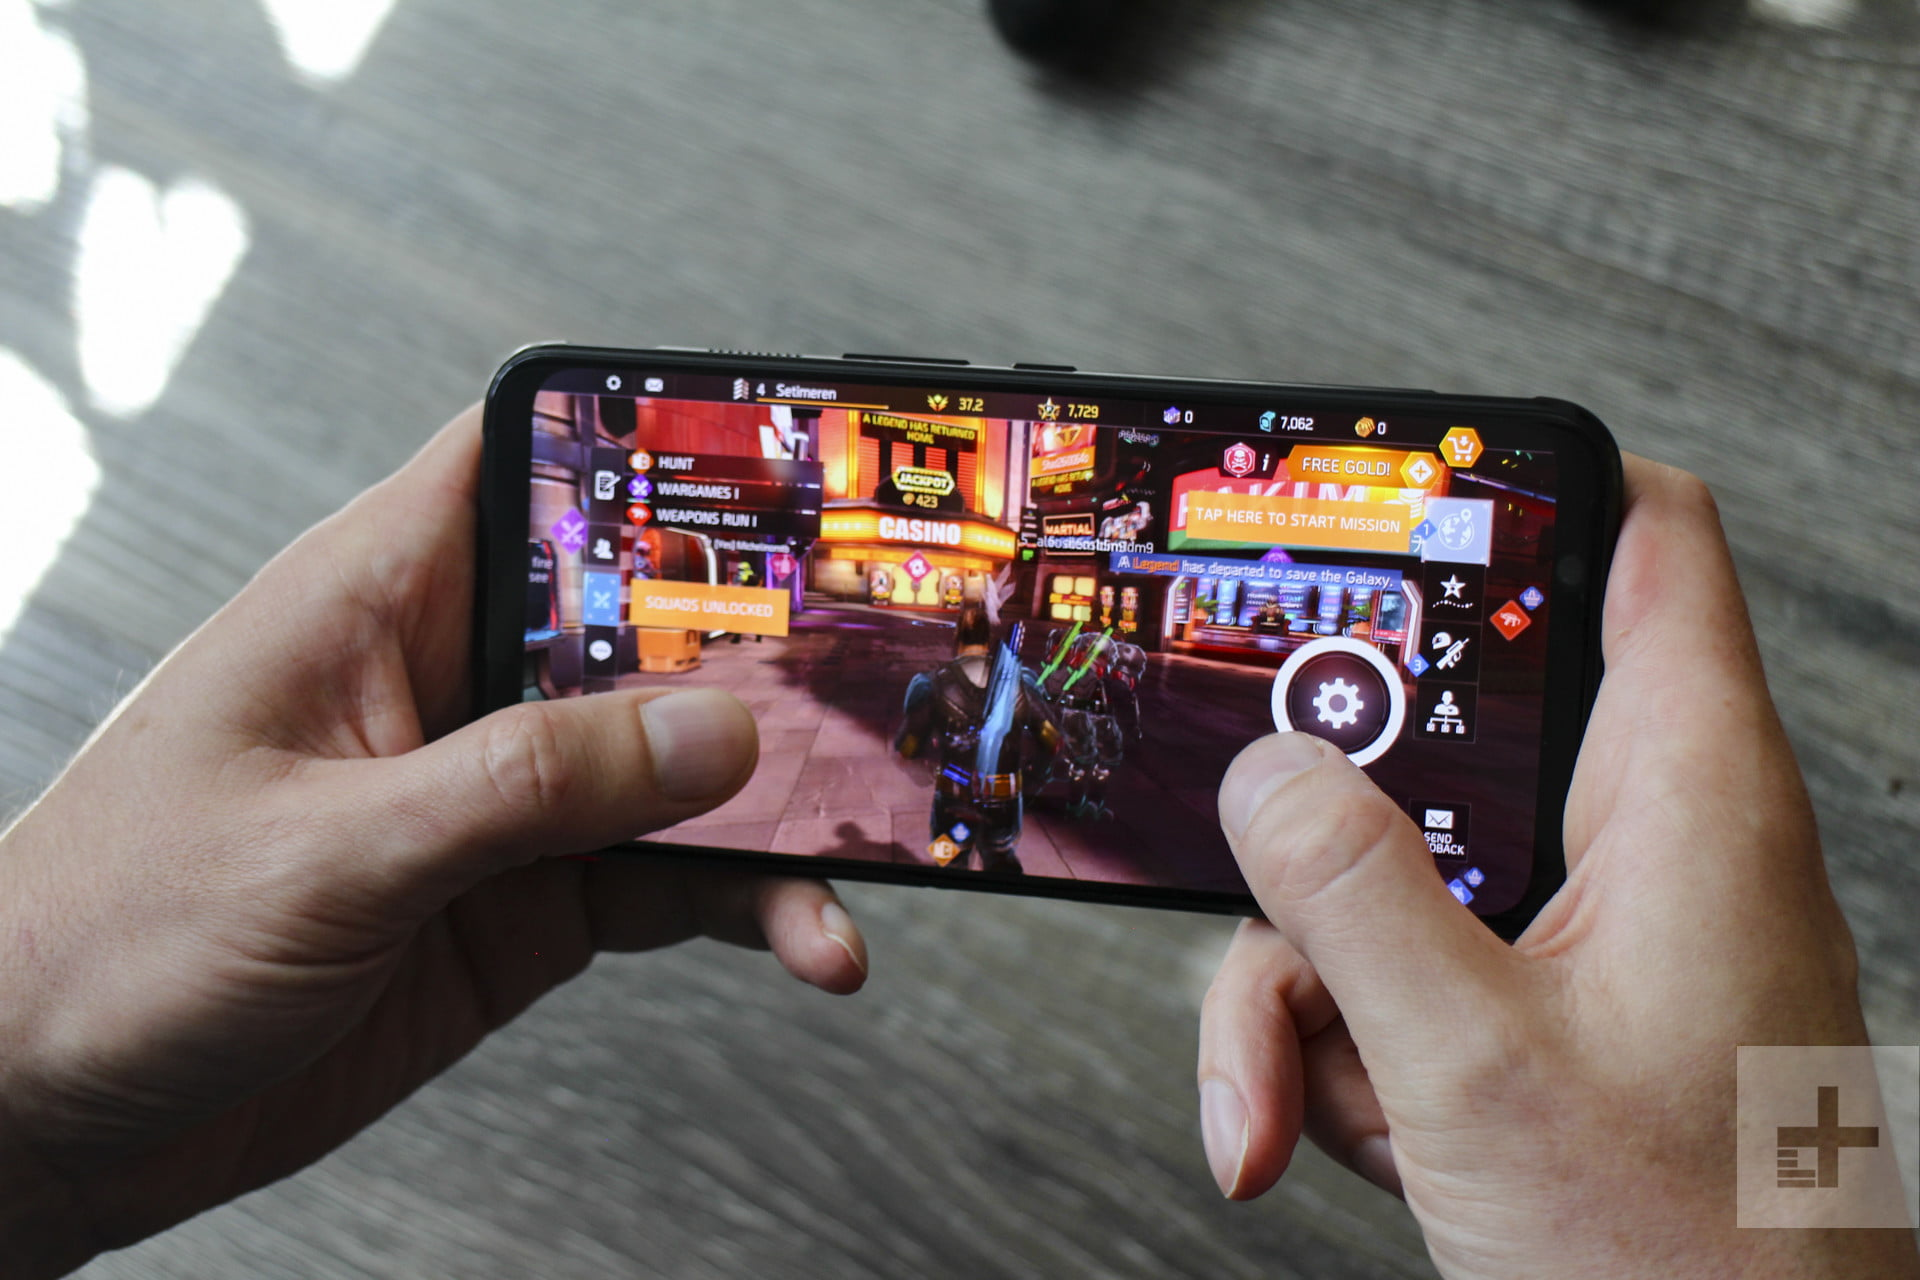 Red Magic 3 Review: The Gaming Phone You've Been Waiting ...